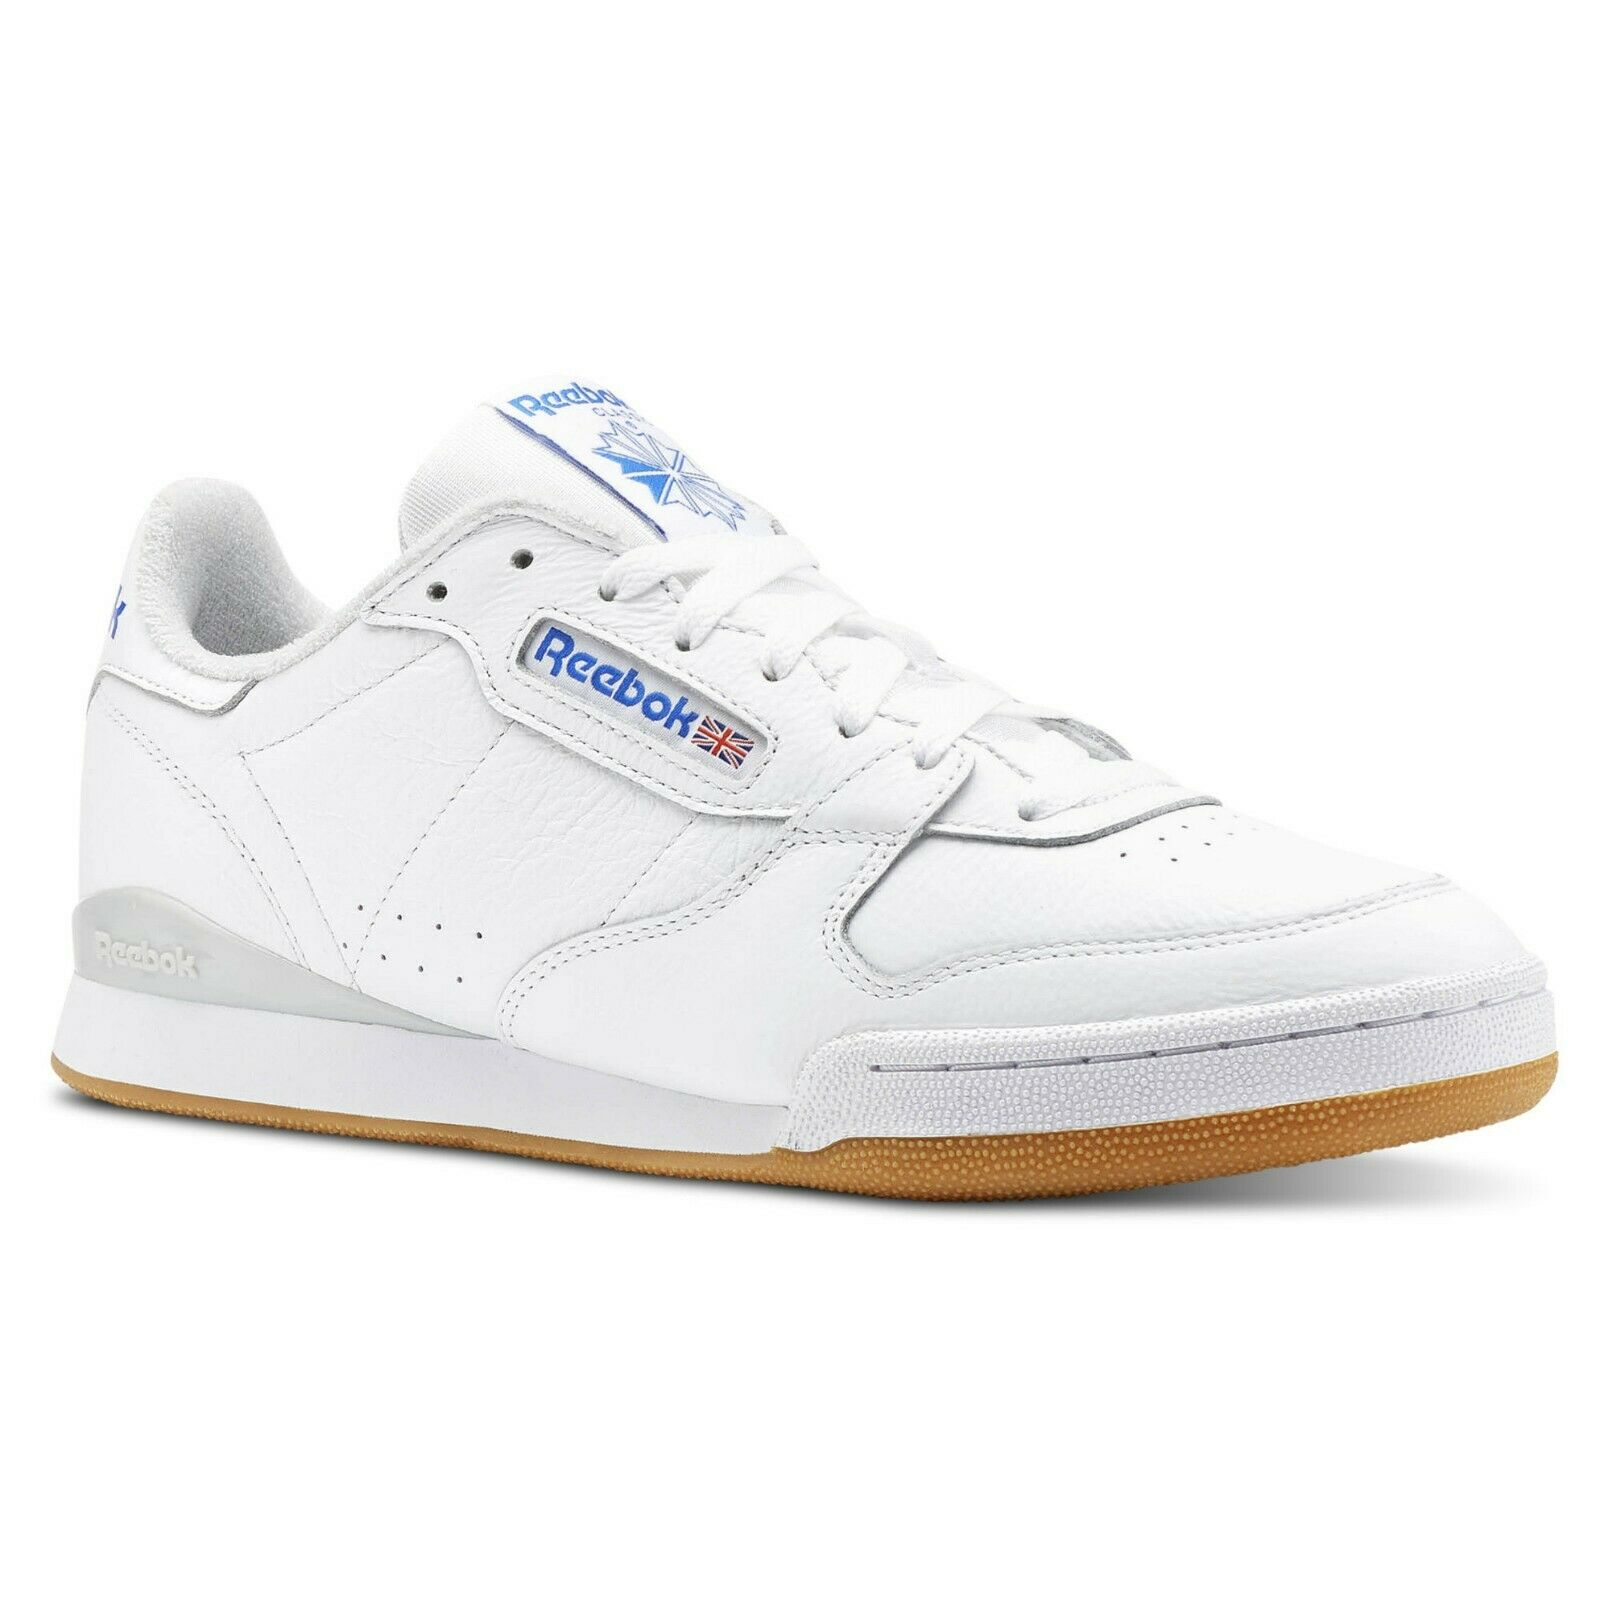 Details about REEBOK CLASSICS PHASE 1 GUM WHITE TRAINERS NEW SNEAKERS SHOES RETRO 80S 90S RARE